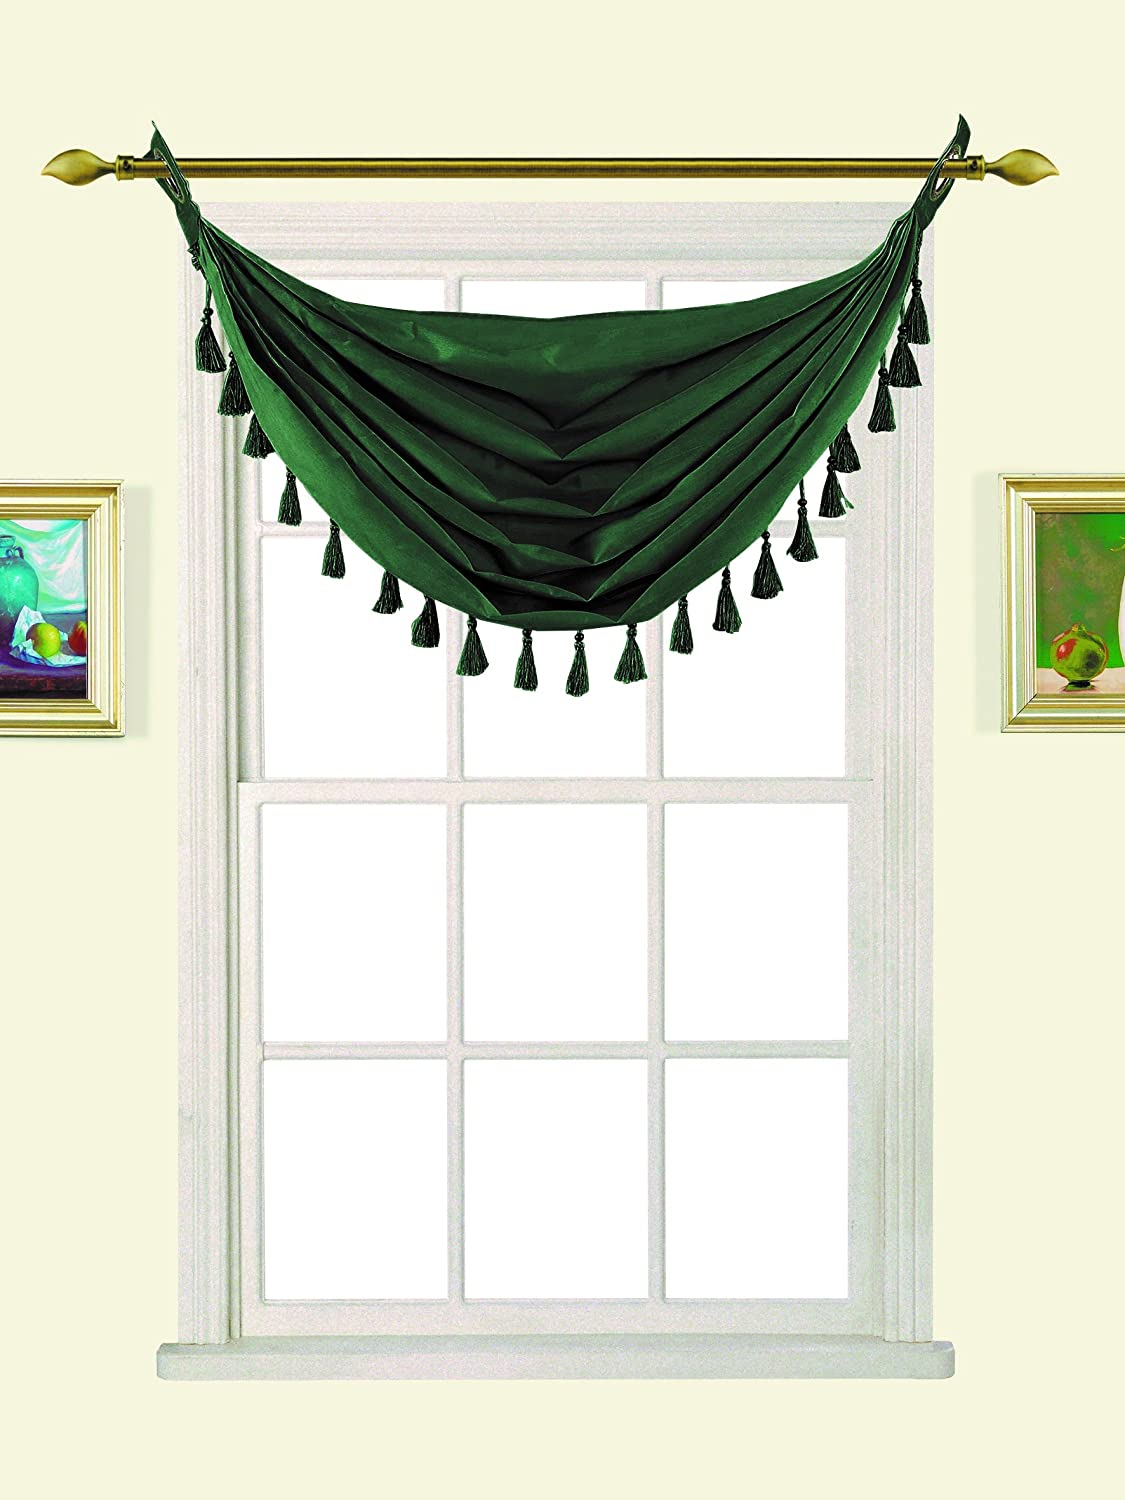 GorgeousHomeLinen (M12) 1 Straight Small Silk Bronze Grommets Elegant Waterfall Valance with Decorative Tassels, 50